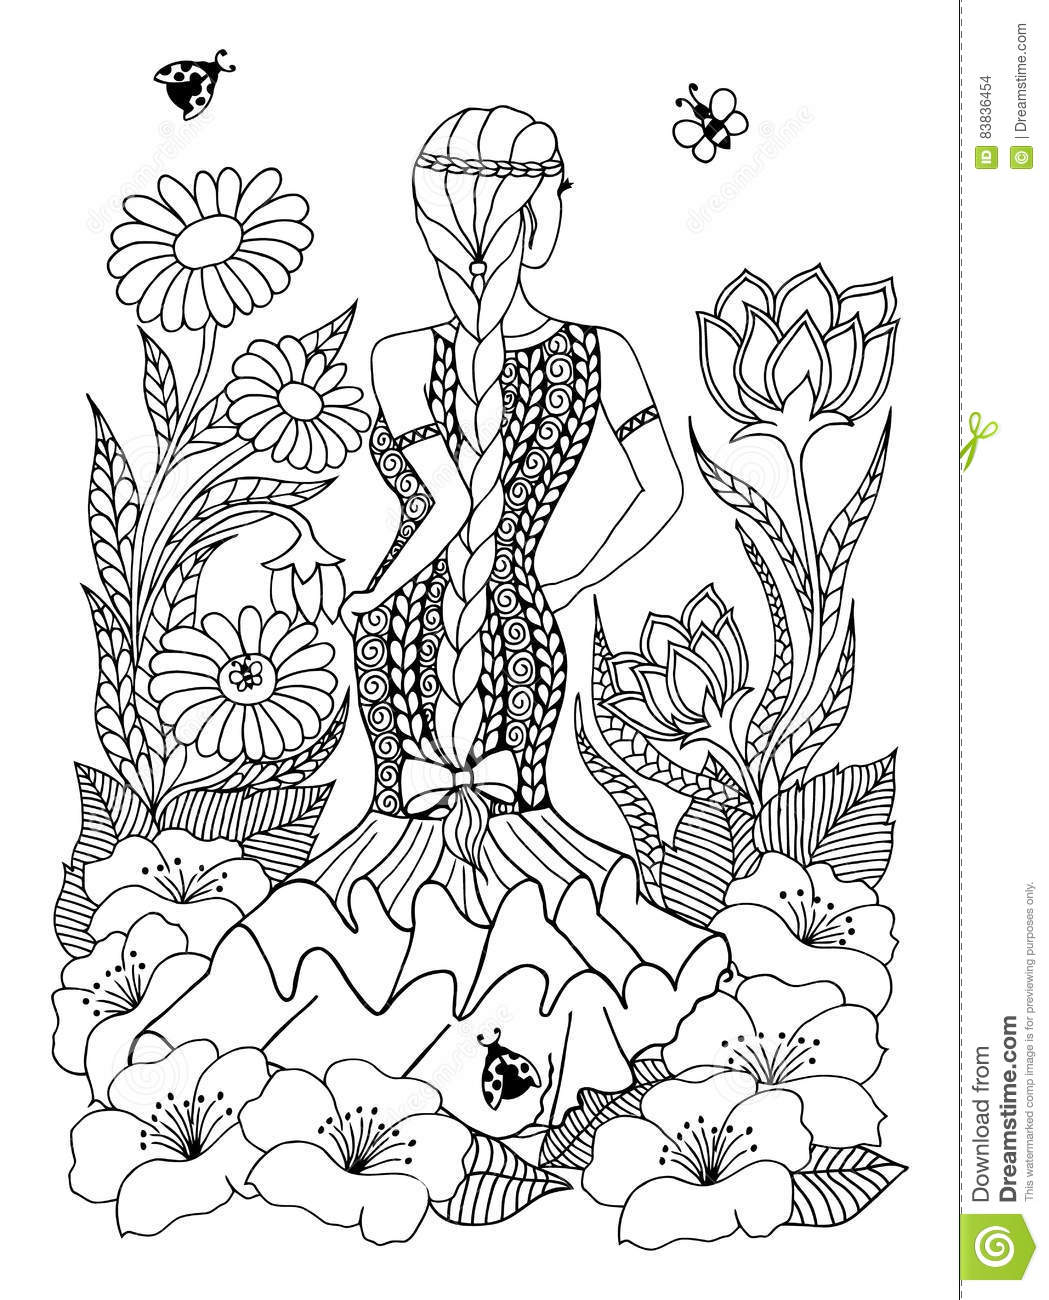 spanish coloring pages for adults | Vector Illustration Zentangl Spanish Woman Girl Standing ...